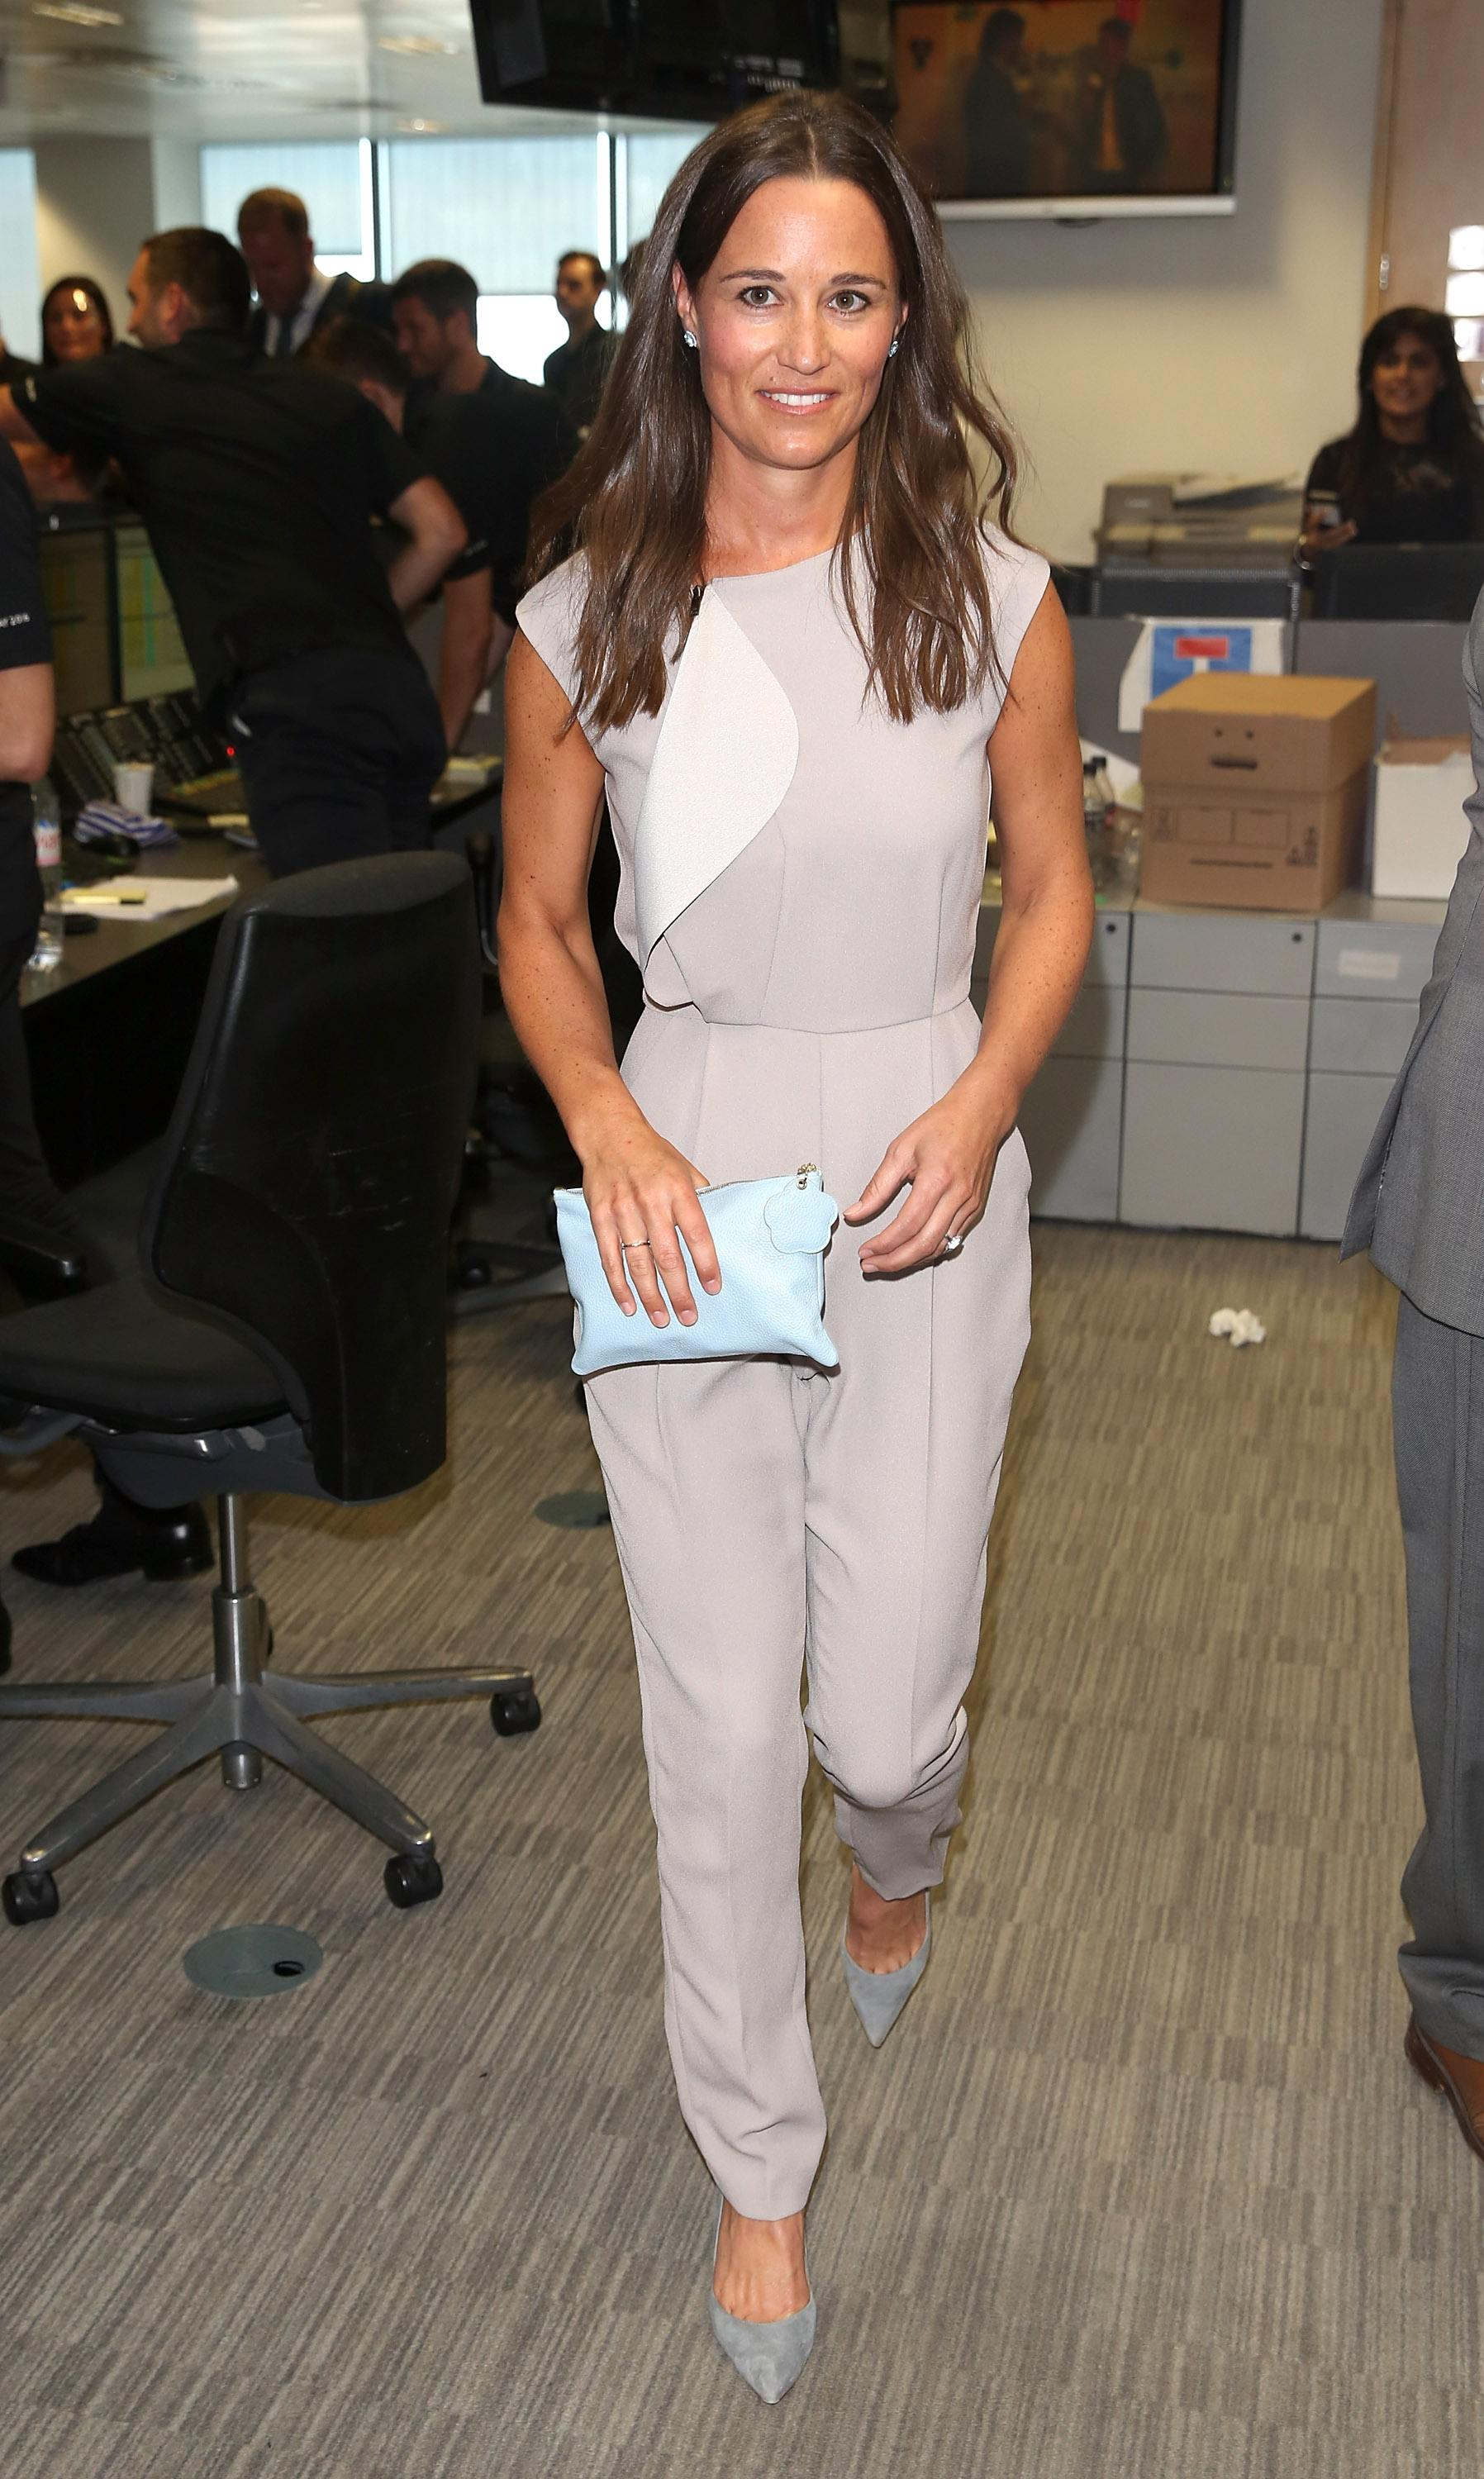 Pippa Middleton attends the BGC Annual Global Charity Day at Canary Wharf on September 12, 2016 in London, England.